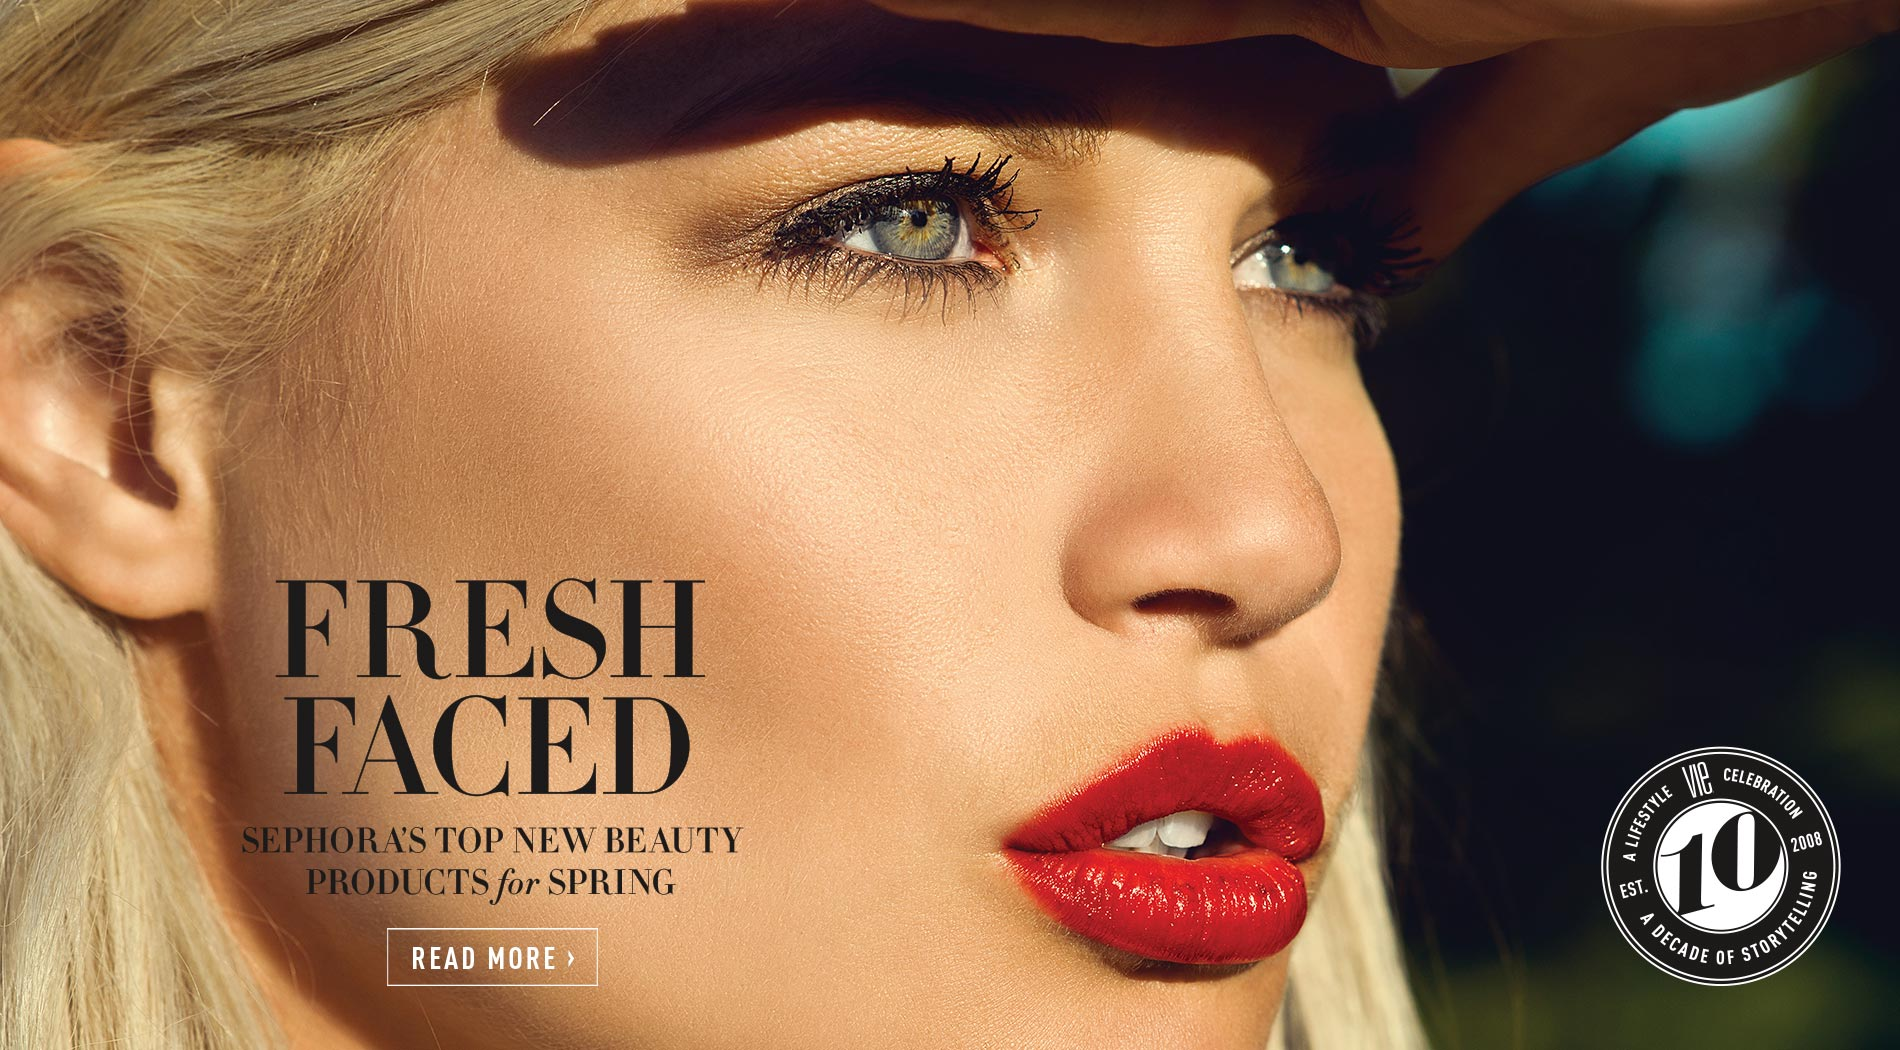 VIE Magazine - January 2018 Health & Beauty Issue - Fresh Faced - Sephora's top new beauty products